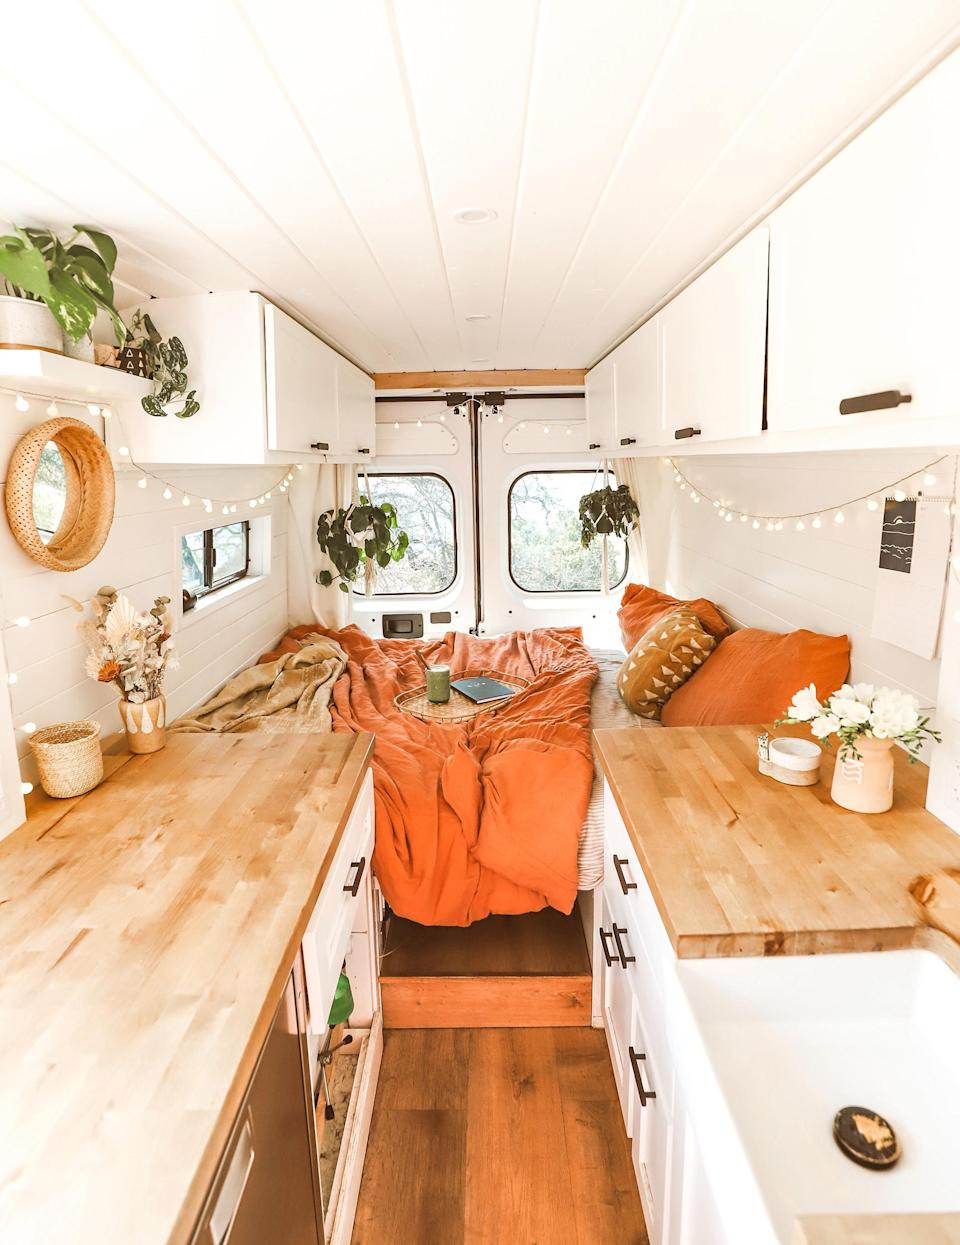 Young people are renovating vans, RVs and even school buses and turning them into homes.